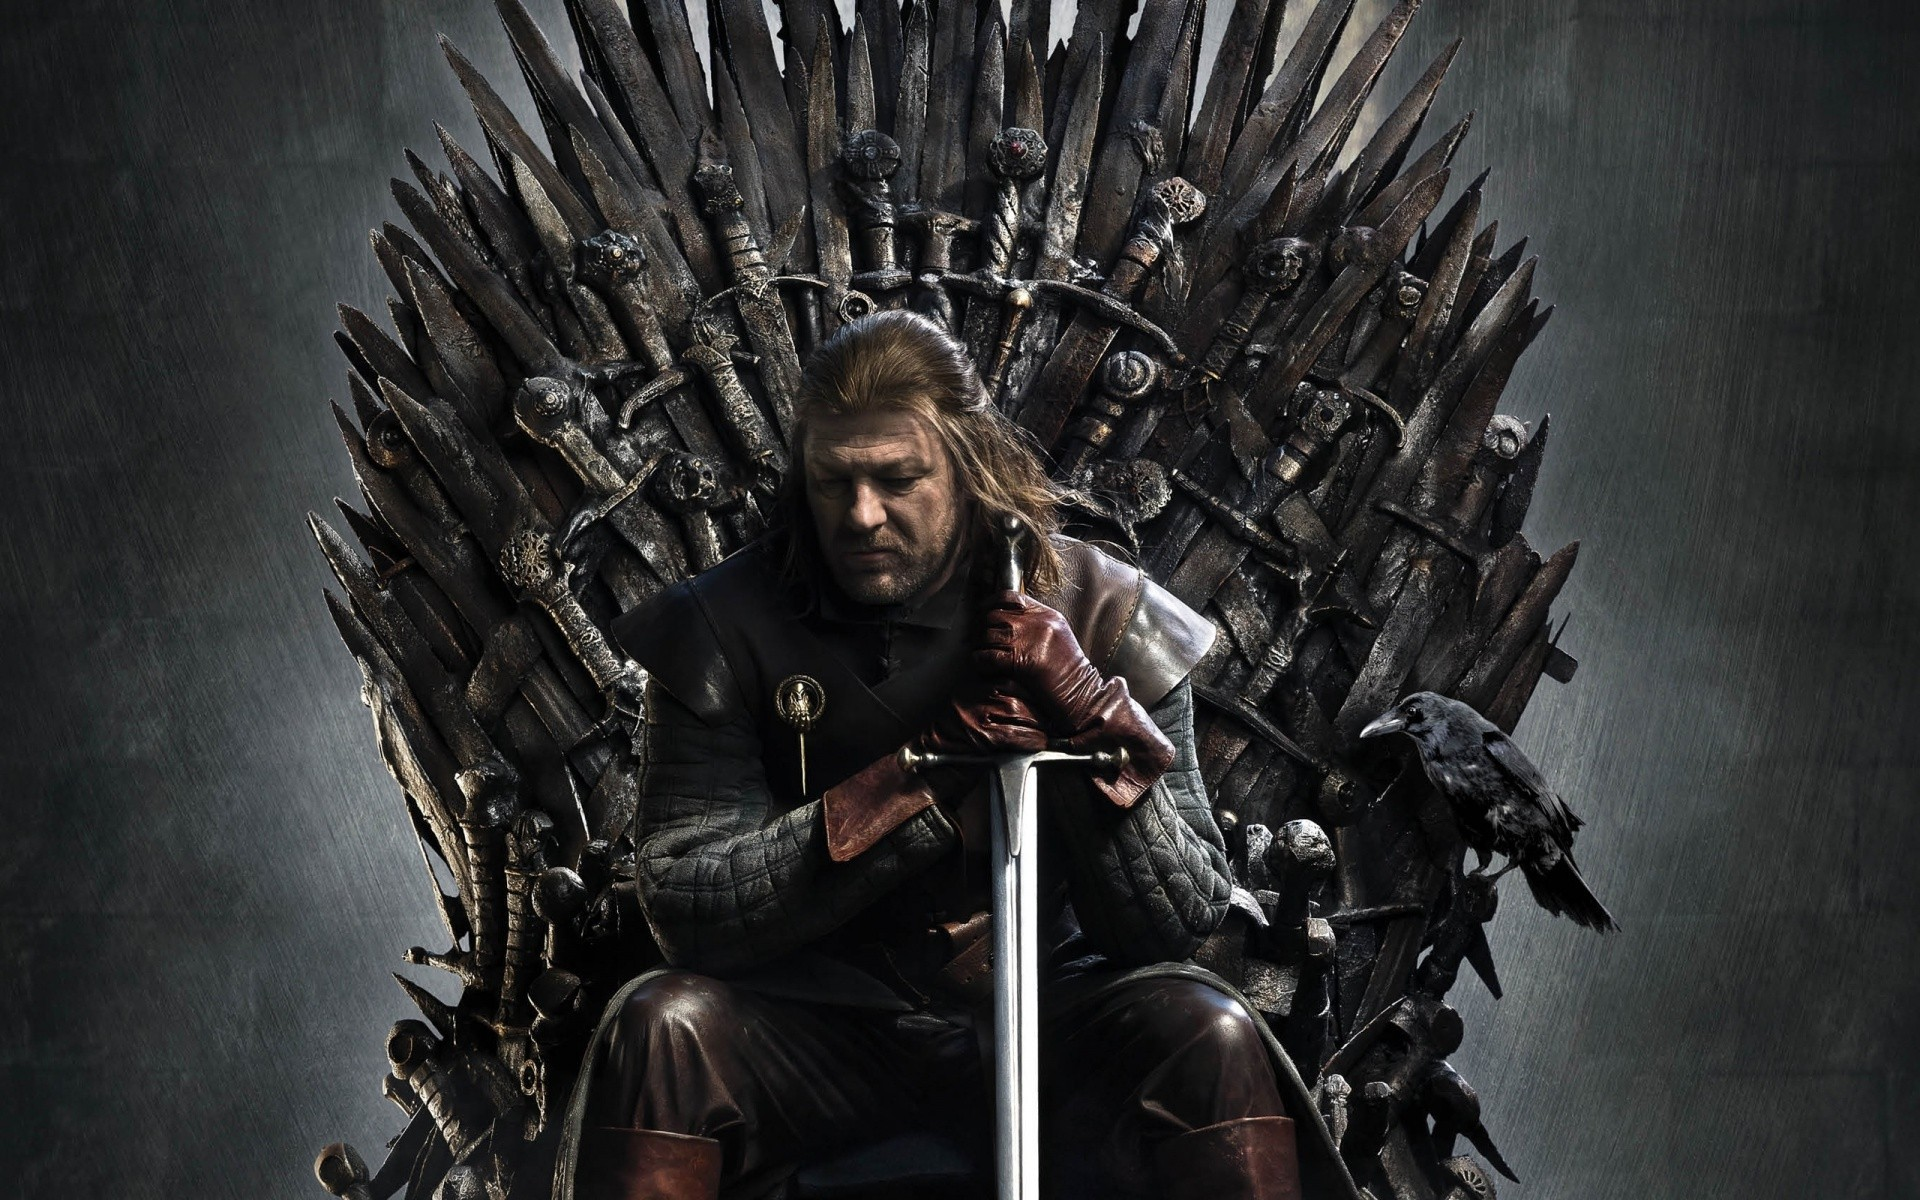 Game Of Thrones Wallpaper Ned Stark Hd 1080p Hd Wallpapers   Facebook 1920x1200